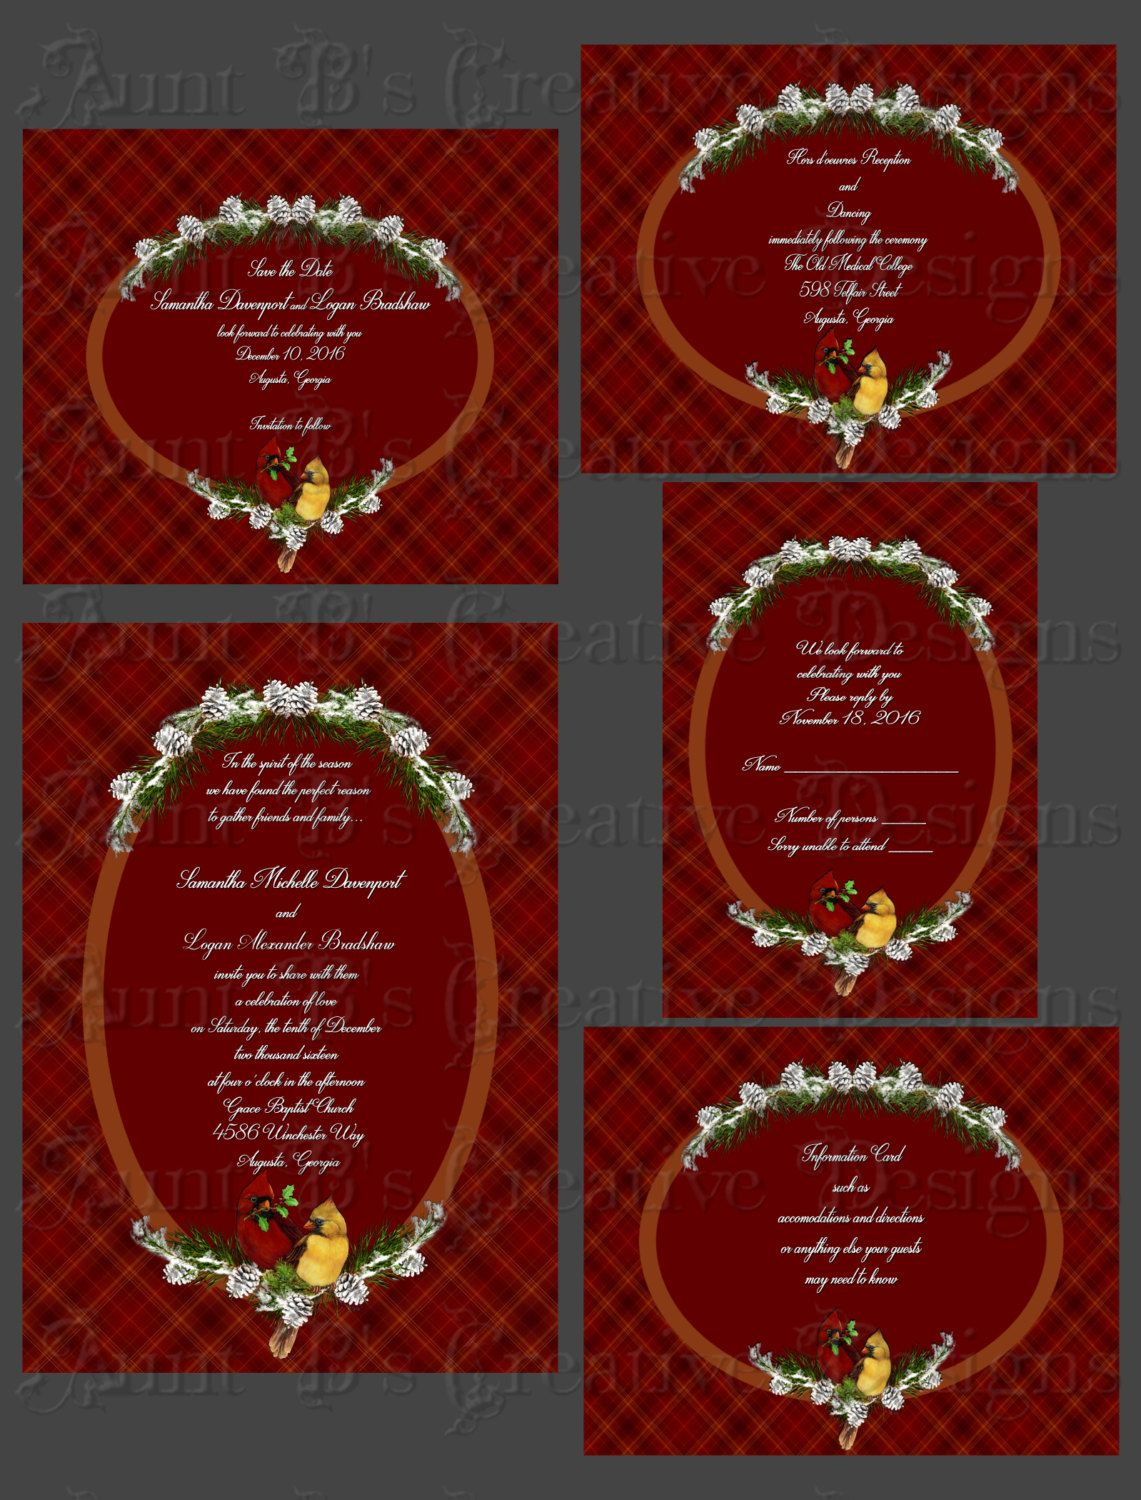 Cardinal Plaid Wedding Invitation, Cardinal Wedding Invitation ...